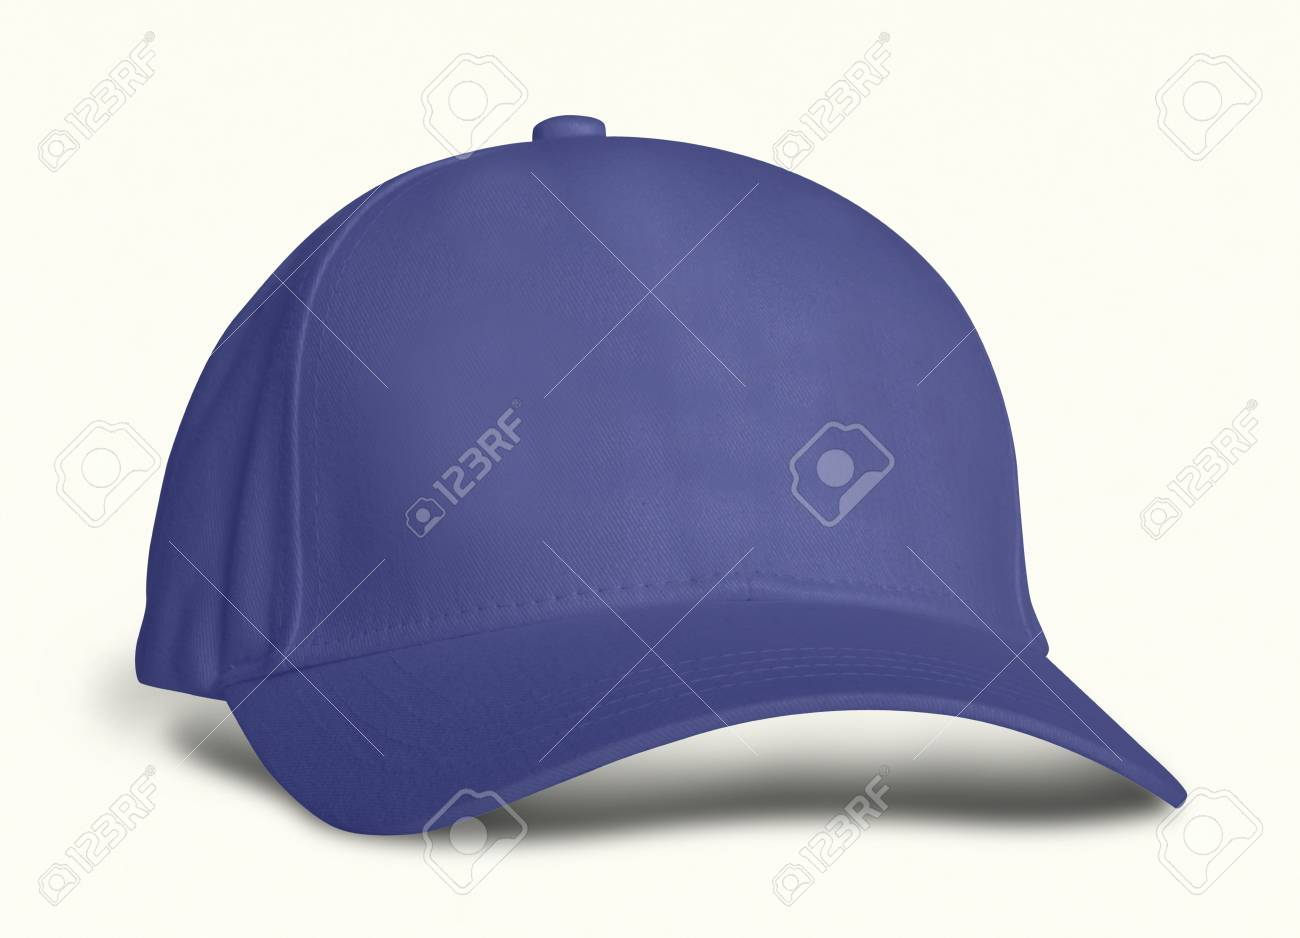 72d02d524e1cd A modern and minimalist baseball cap mock up to help your designs  beautifully. You can customize almost everything in this cap image to match  your cap ...